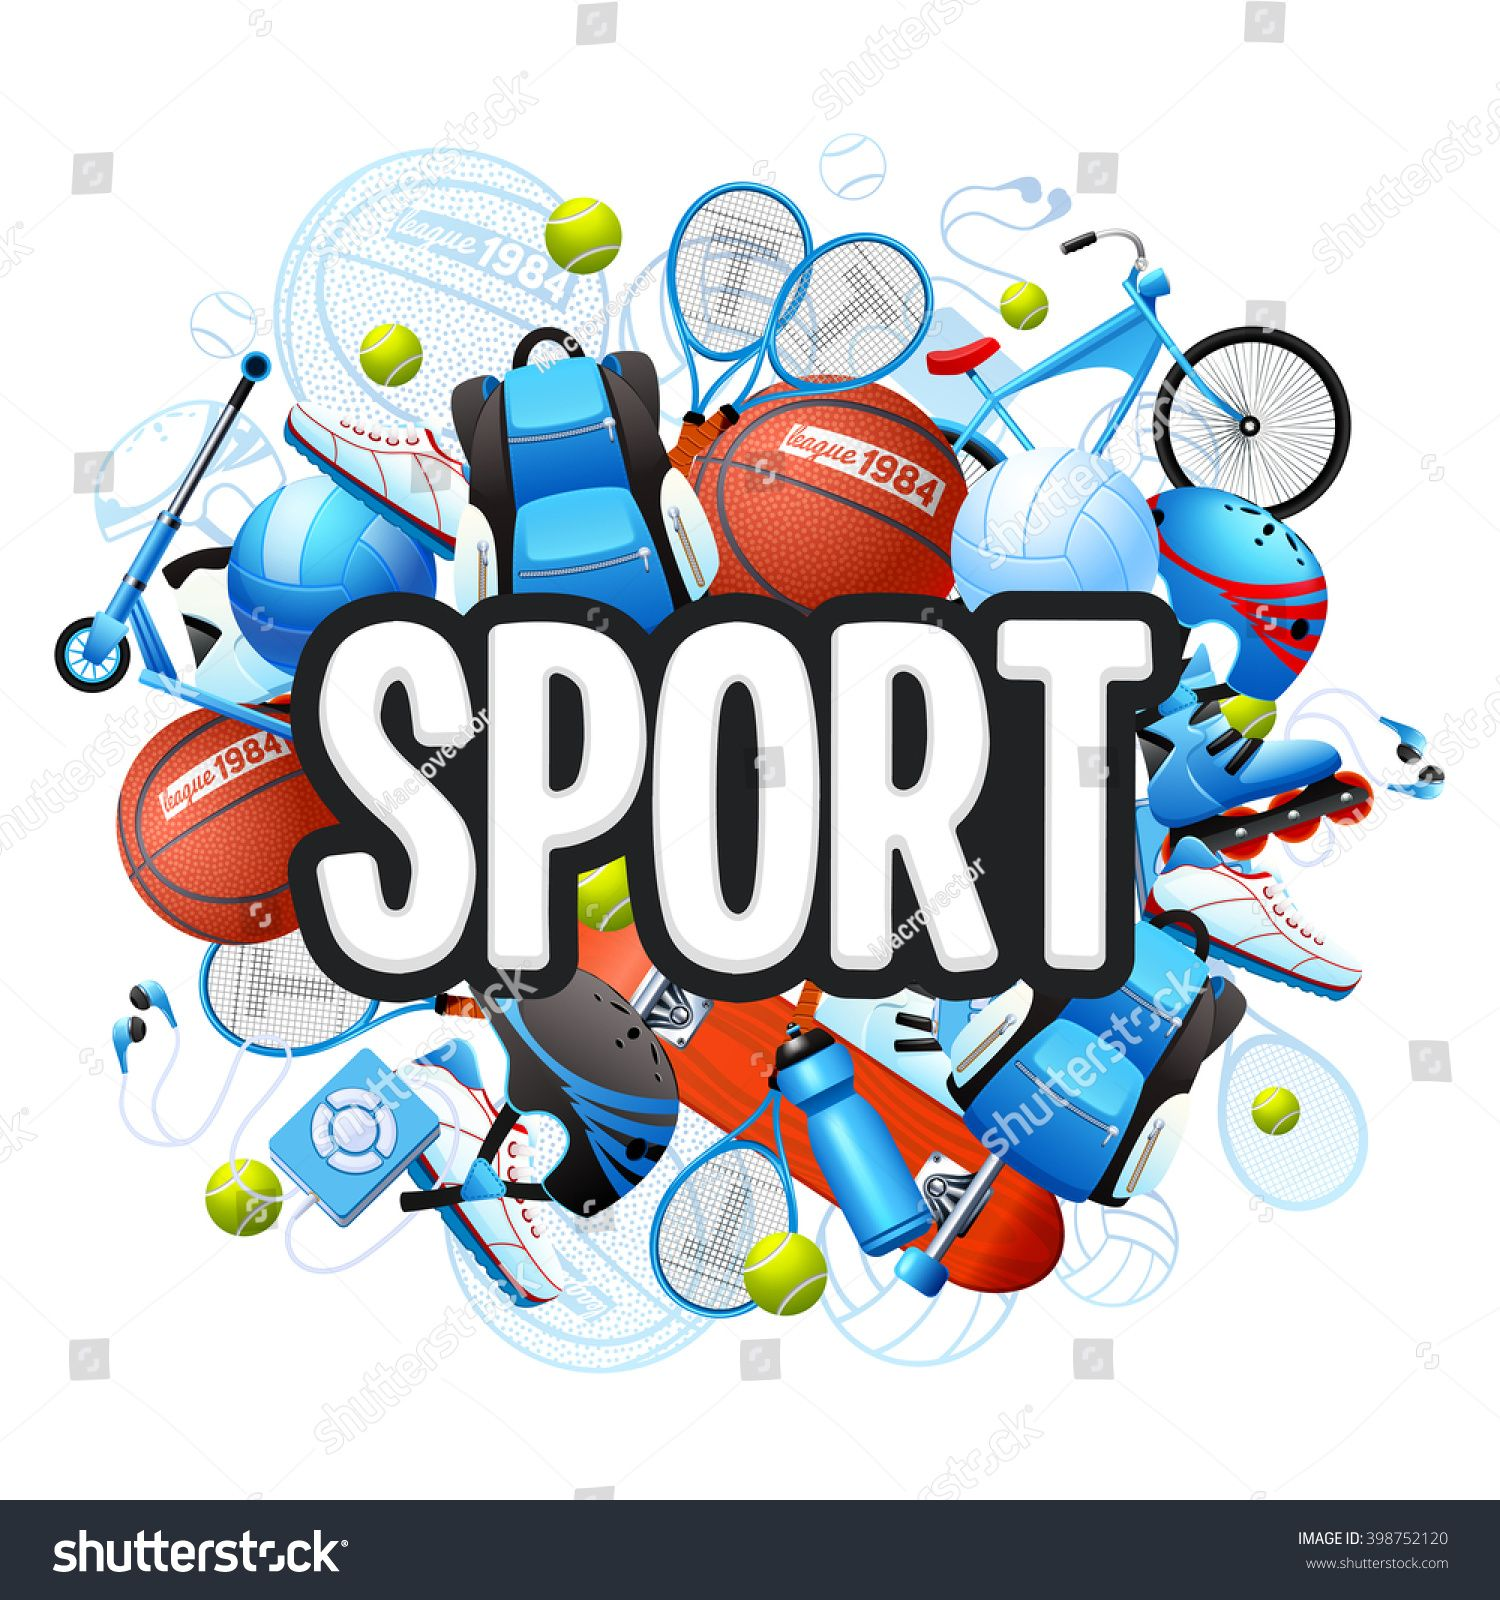 Summer Sports Cartoon Concept With Sports Equipment And Outfit Vector Illustration Ad Ad Cartoon Concept Summer Sports Summer Sports Sports Kids Sports